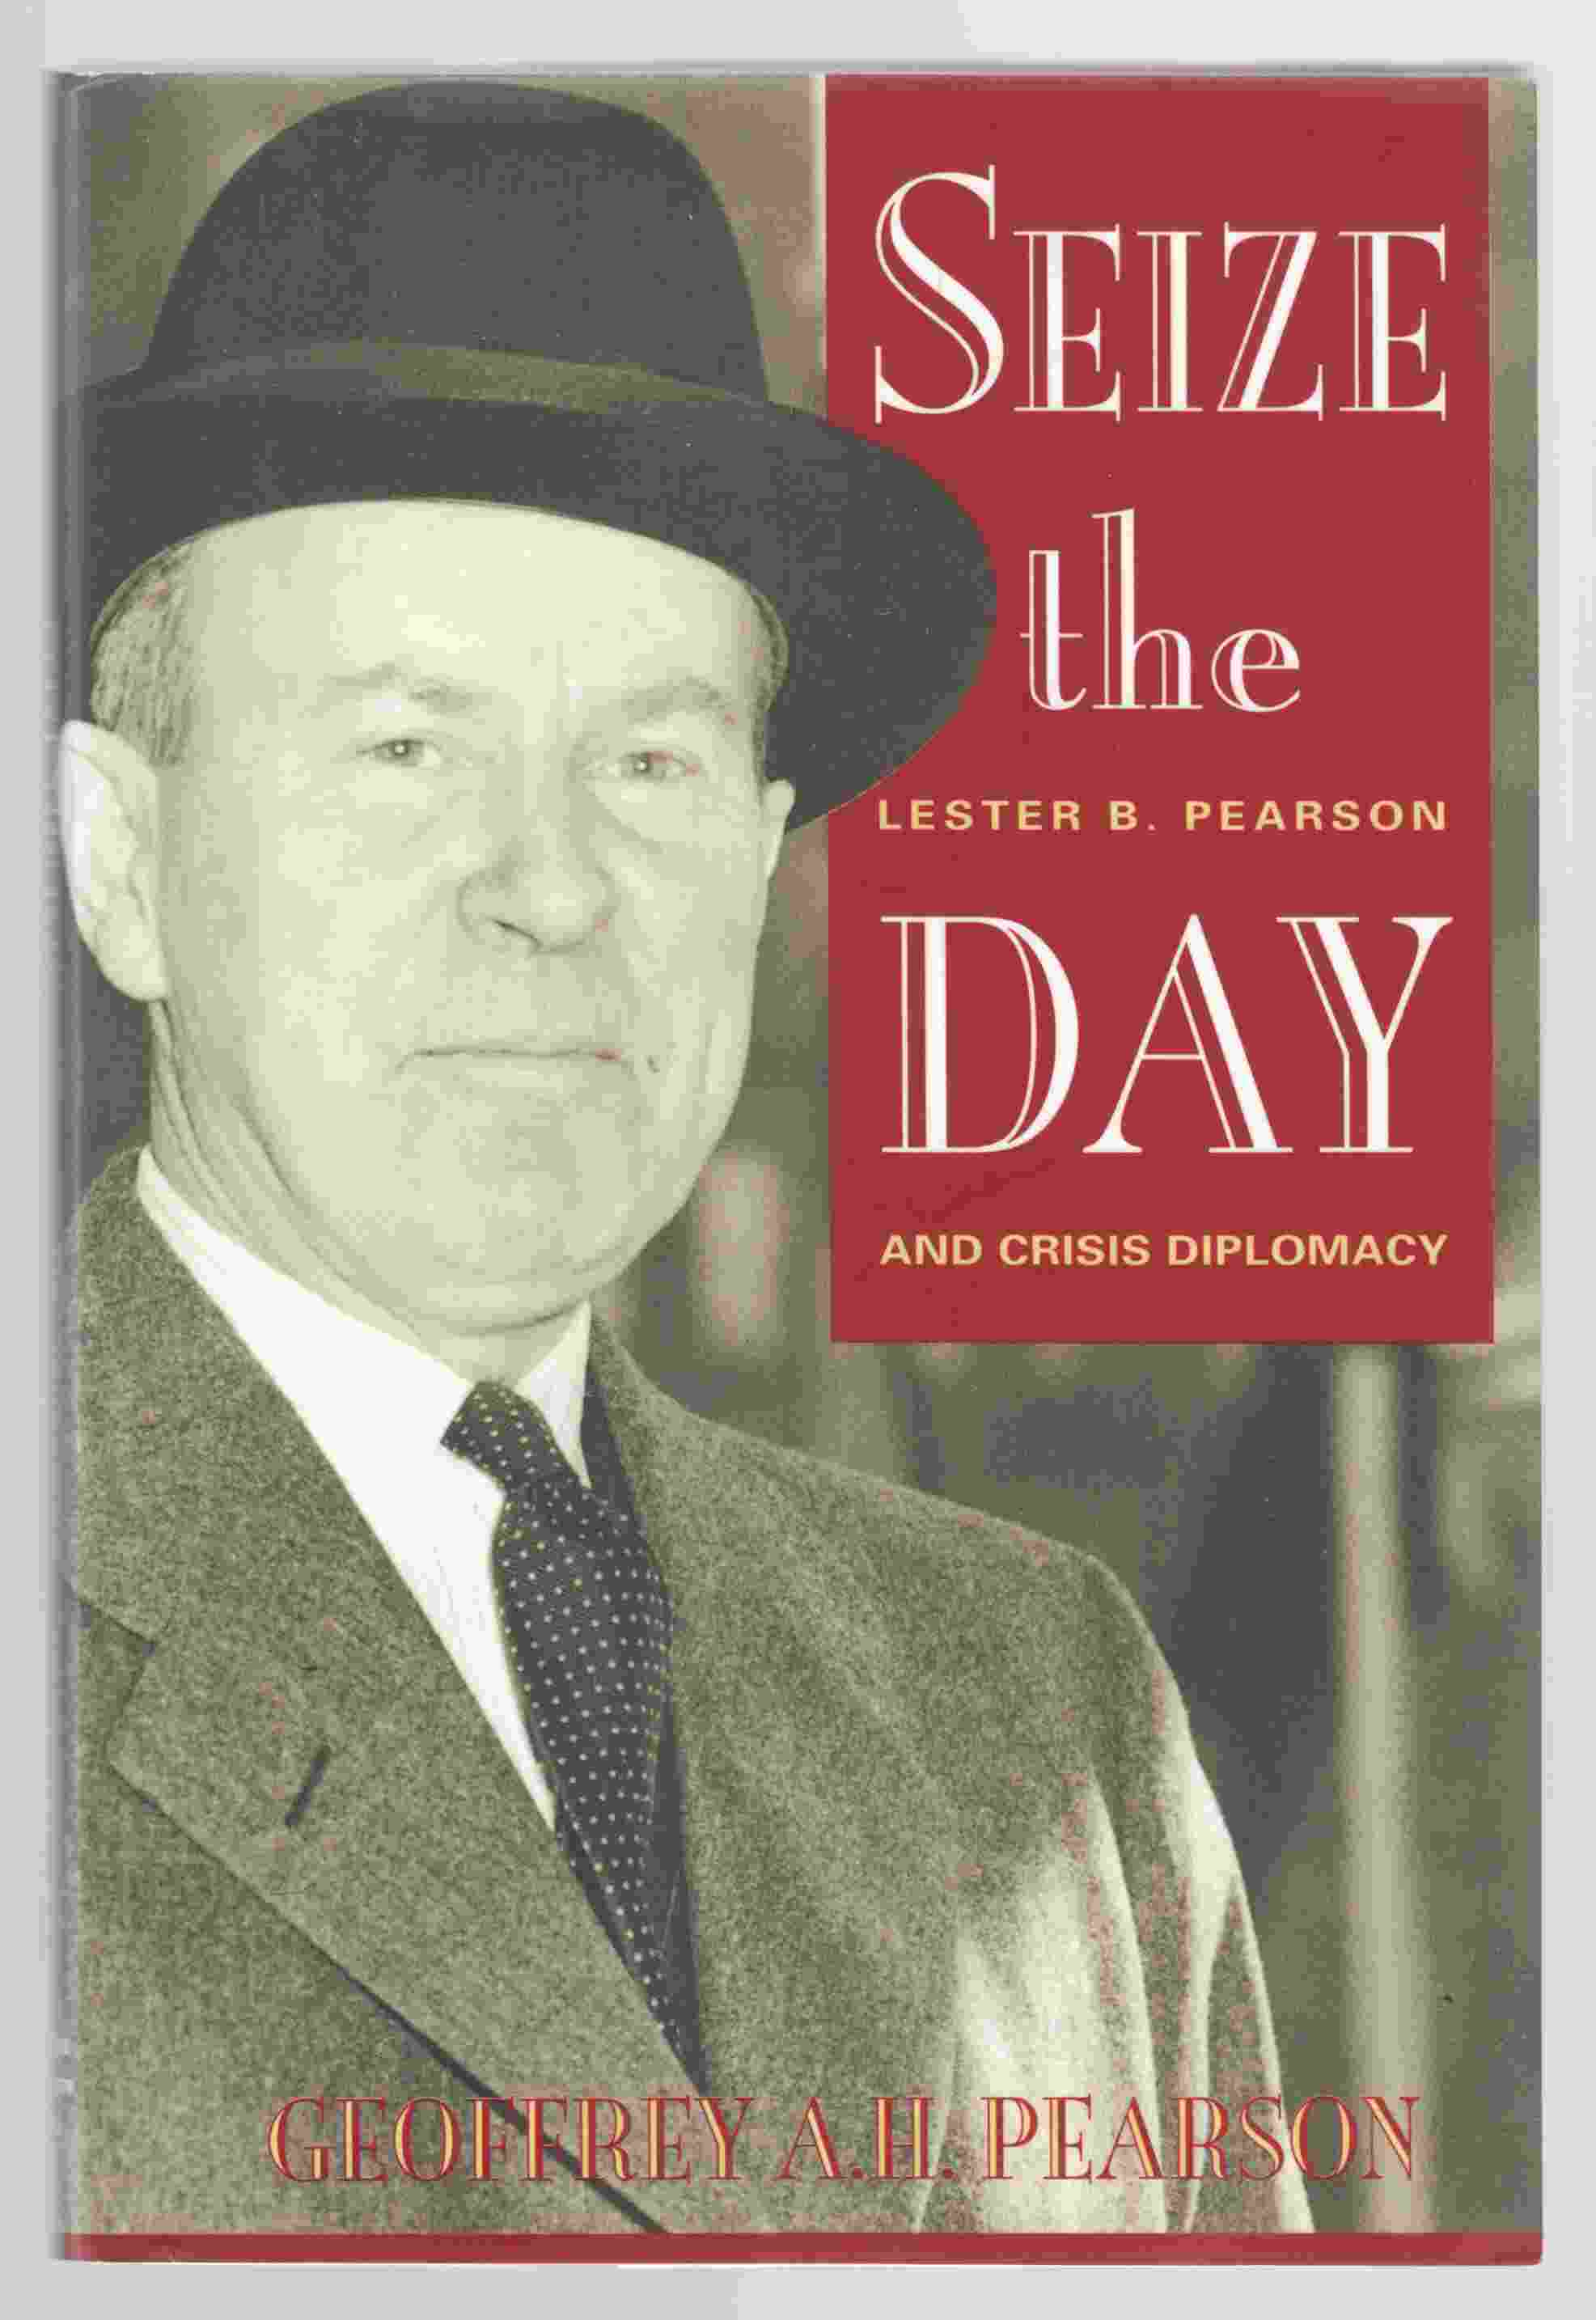 Image for Seize the Day Lester B. Pearson and Crisis Diplomacy